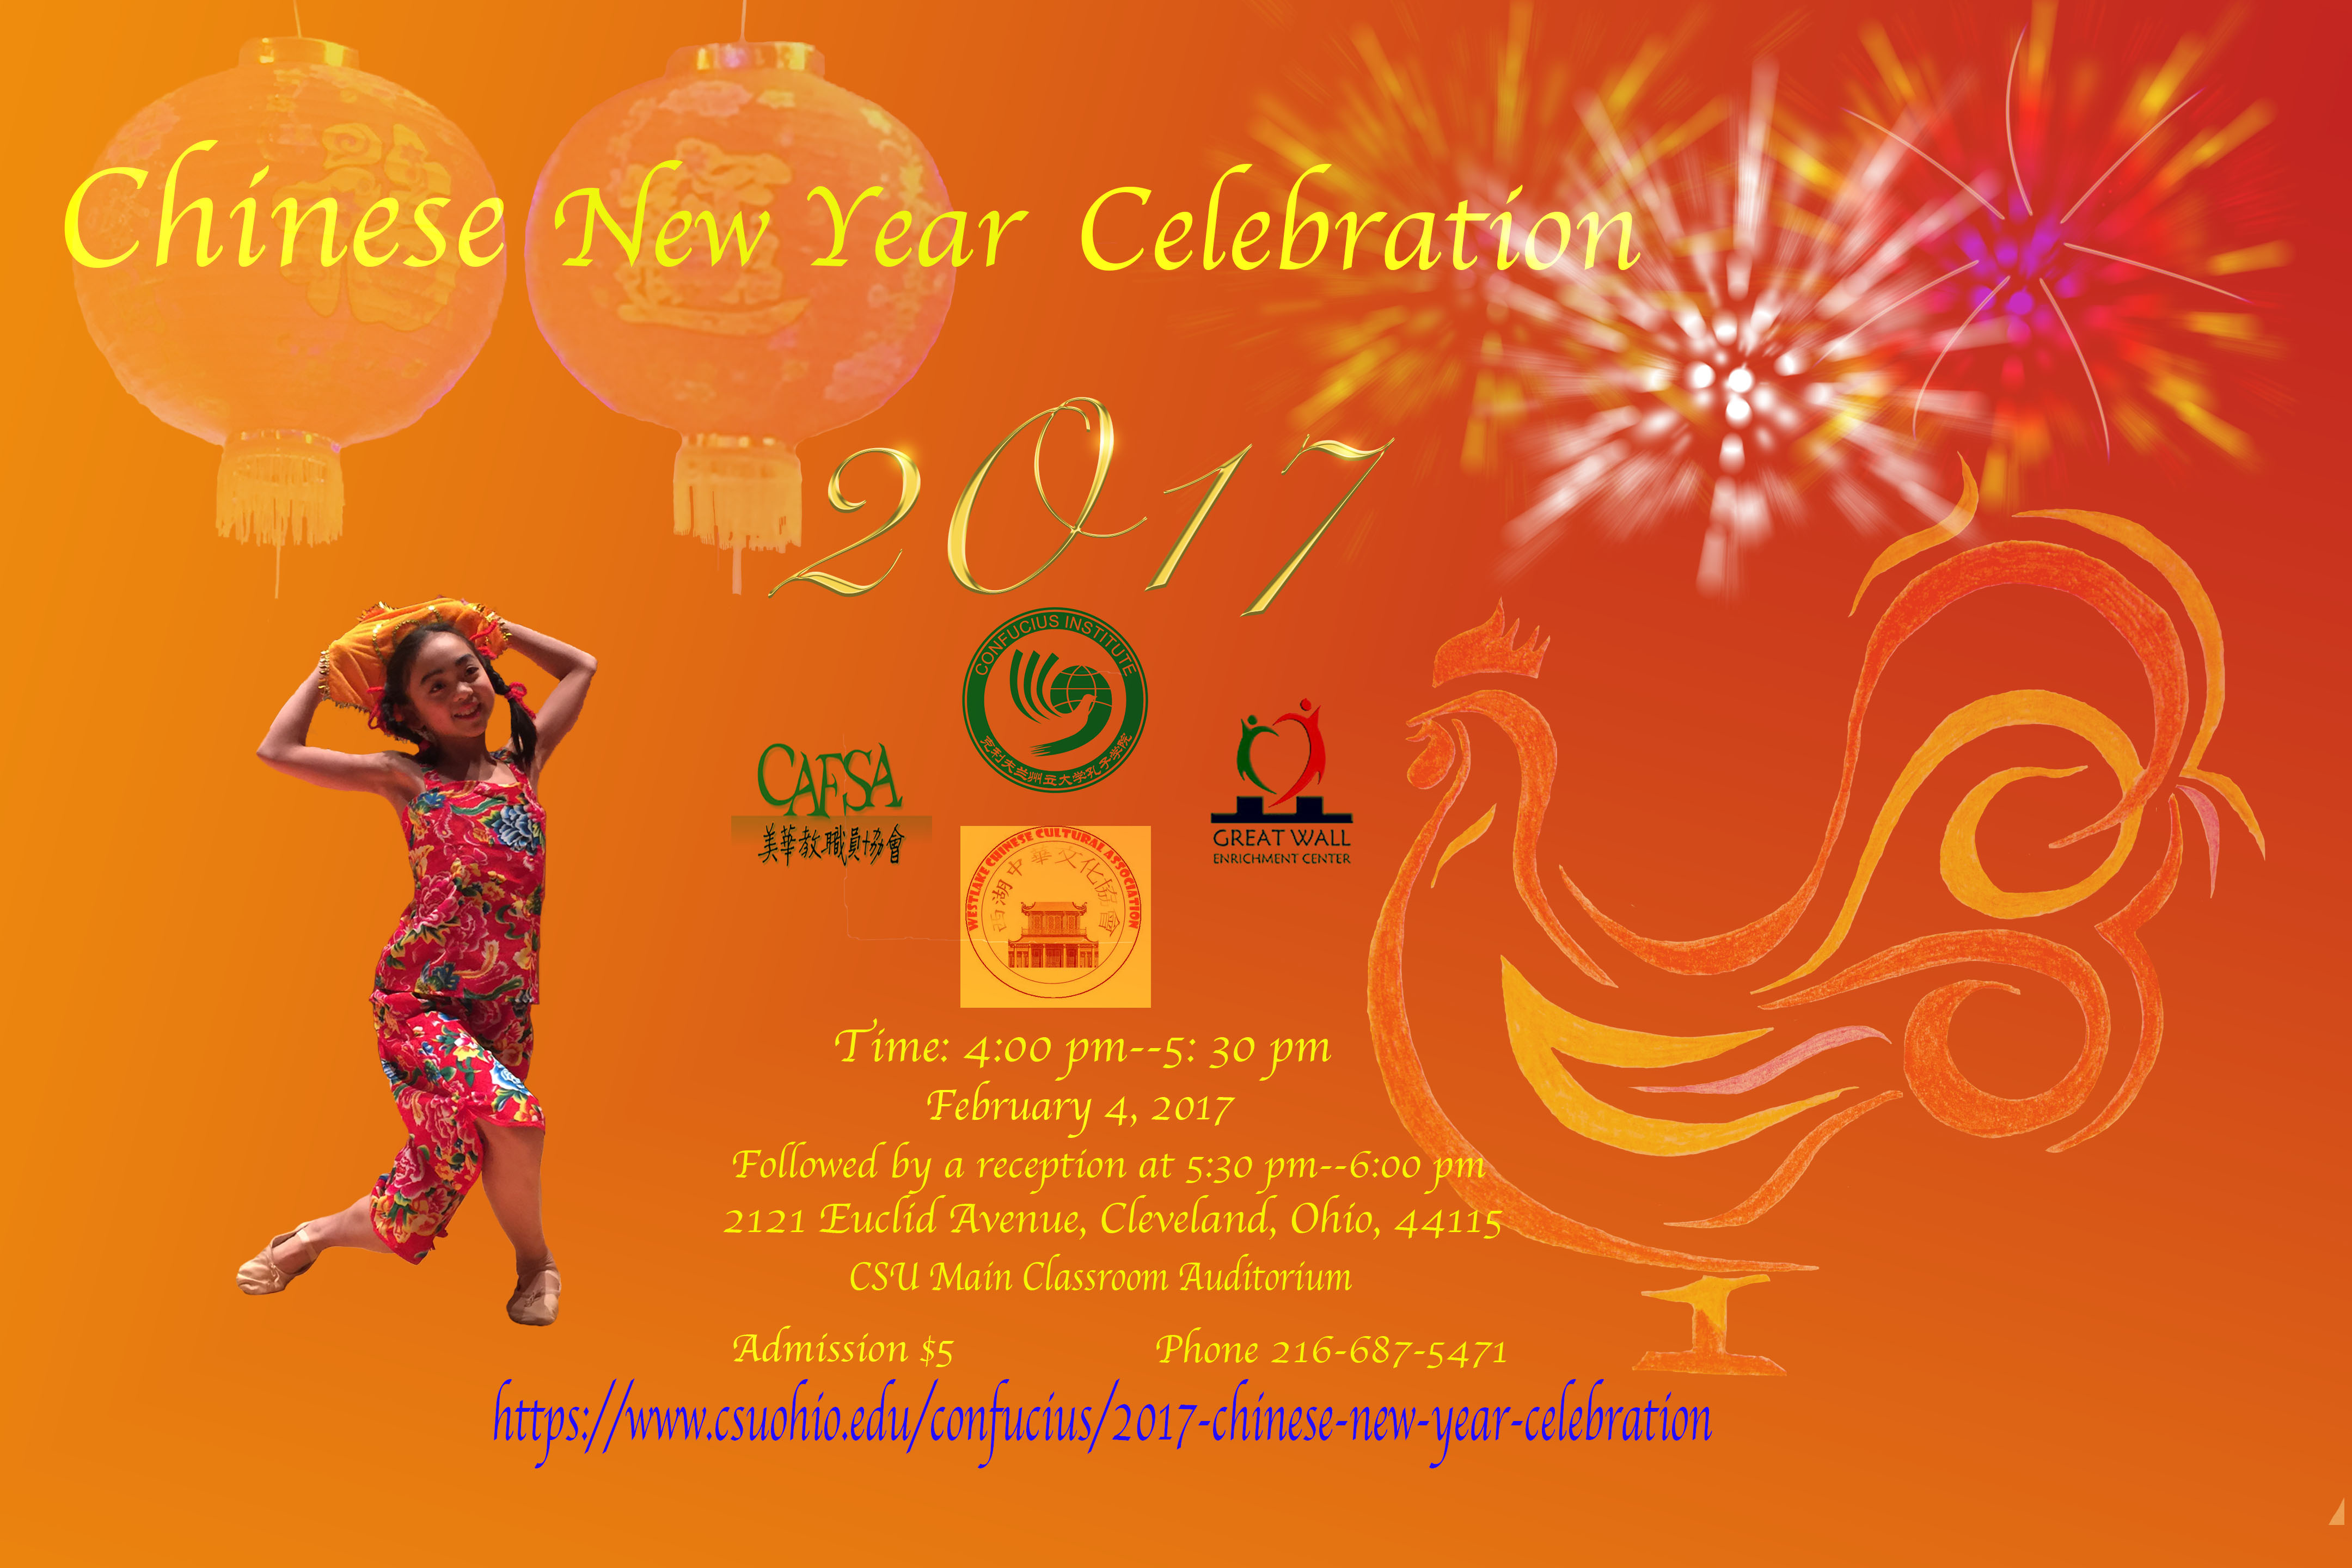 chinese new year festival essay spm Essay: celebrating chinese new year far from home and family  chinese  lunar new year presentation and lion dance performance w ann arbor   eastern michigan university chinese new year's celebration, ypsilanti,.